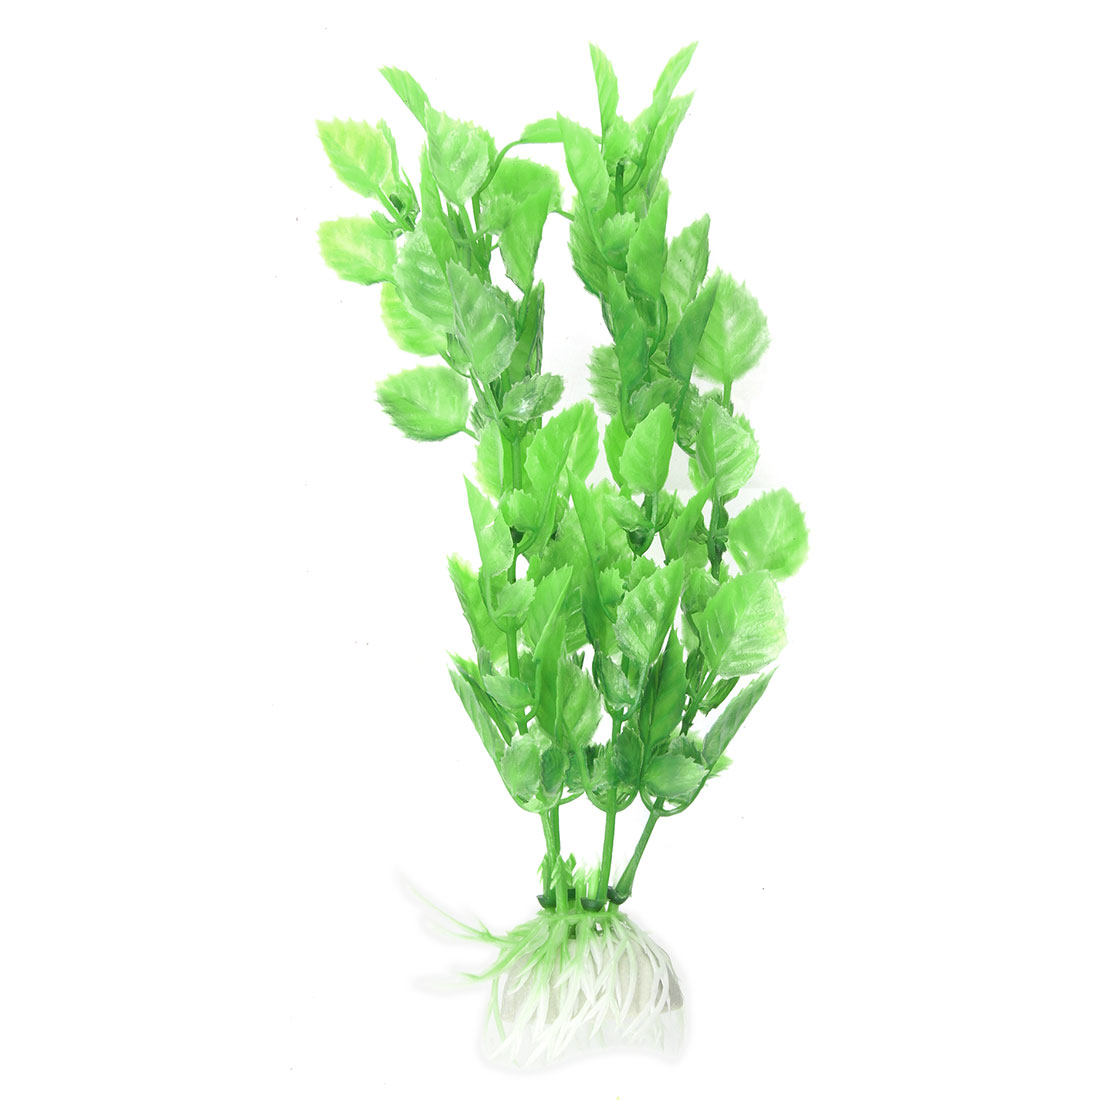 Ceramic Base w Plastic Green Grass Plants Ornament for Fish Tank